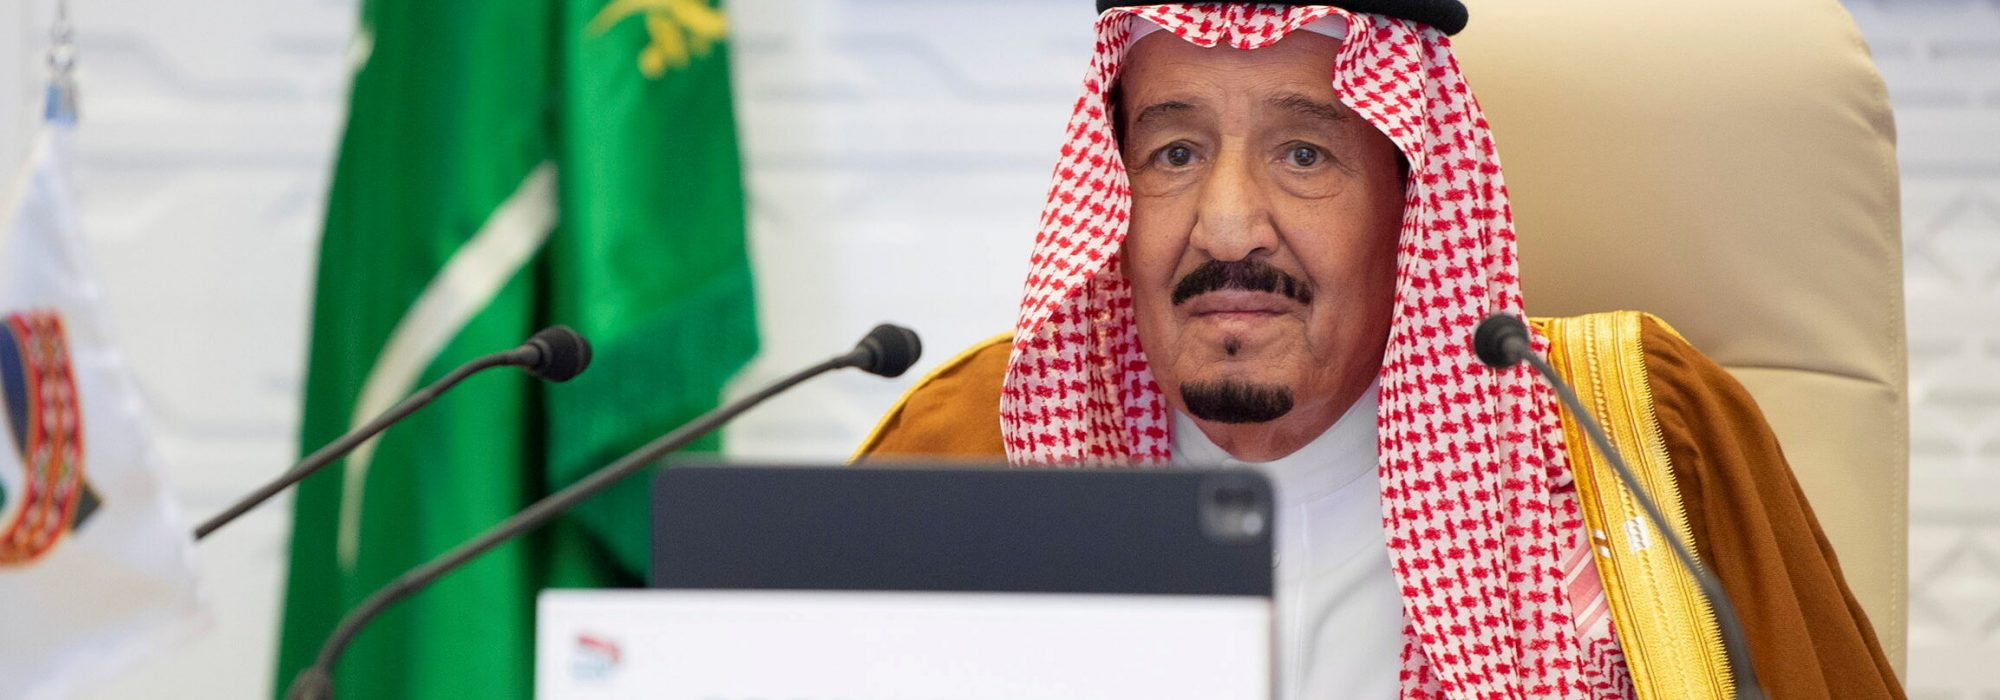 Saudi King Salman bin Abdulaziz gives a virtual speech during an opening session of the 15th annual G20 Leaders' Summit in Riyadh, Saudi Arabia, November 21, 2020. Bandar Algaloud/Courtesy of Saudi Royal Court/Handout ATTENTION EDITORS - THIS PICTURE WAS PROVIDED BY A THIRD PARTY,Image: 570200986, License: Rights-managed, Restrictions: THIS IMAGE HAS BEEN SUPPLIED BY A THIRD PARTY. IT IS DISTRIBUTED, EXACTLY AS RECEIVED BY REUTERS, AS A SERVICE TO CLIENTS., Model Release: no, Credit line: BANDER ALGALOUD / Reuters / Forum